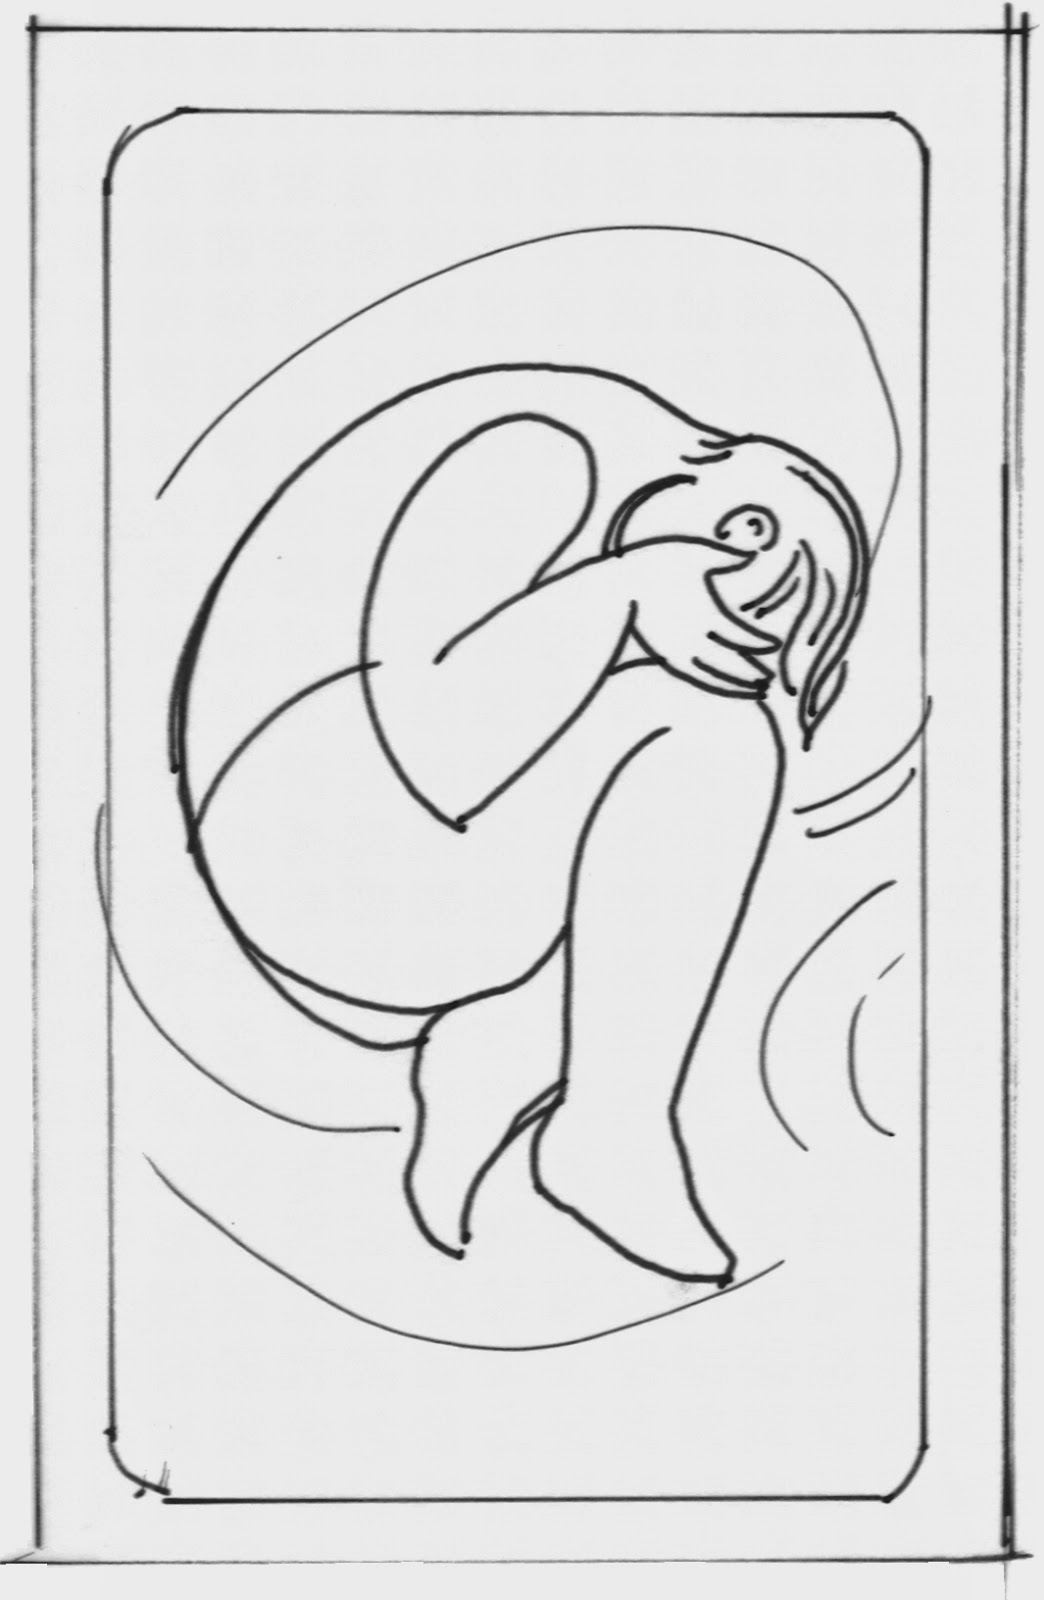 coloring pages on grief - photo#8